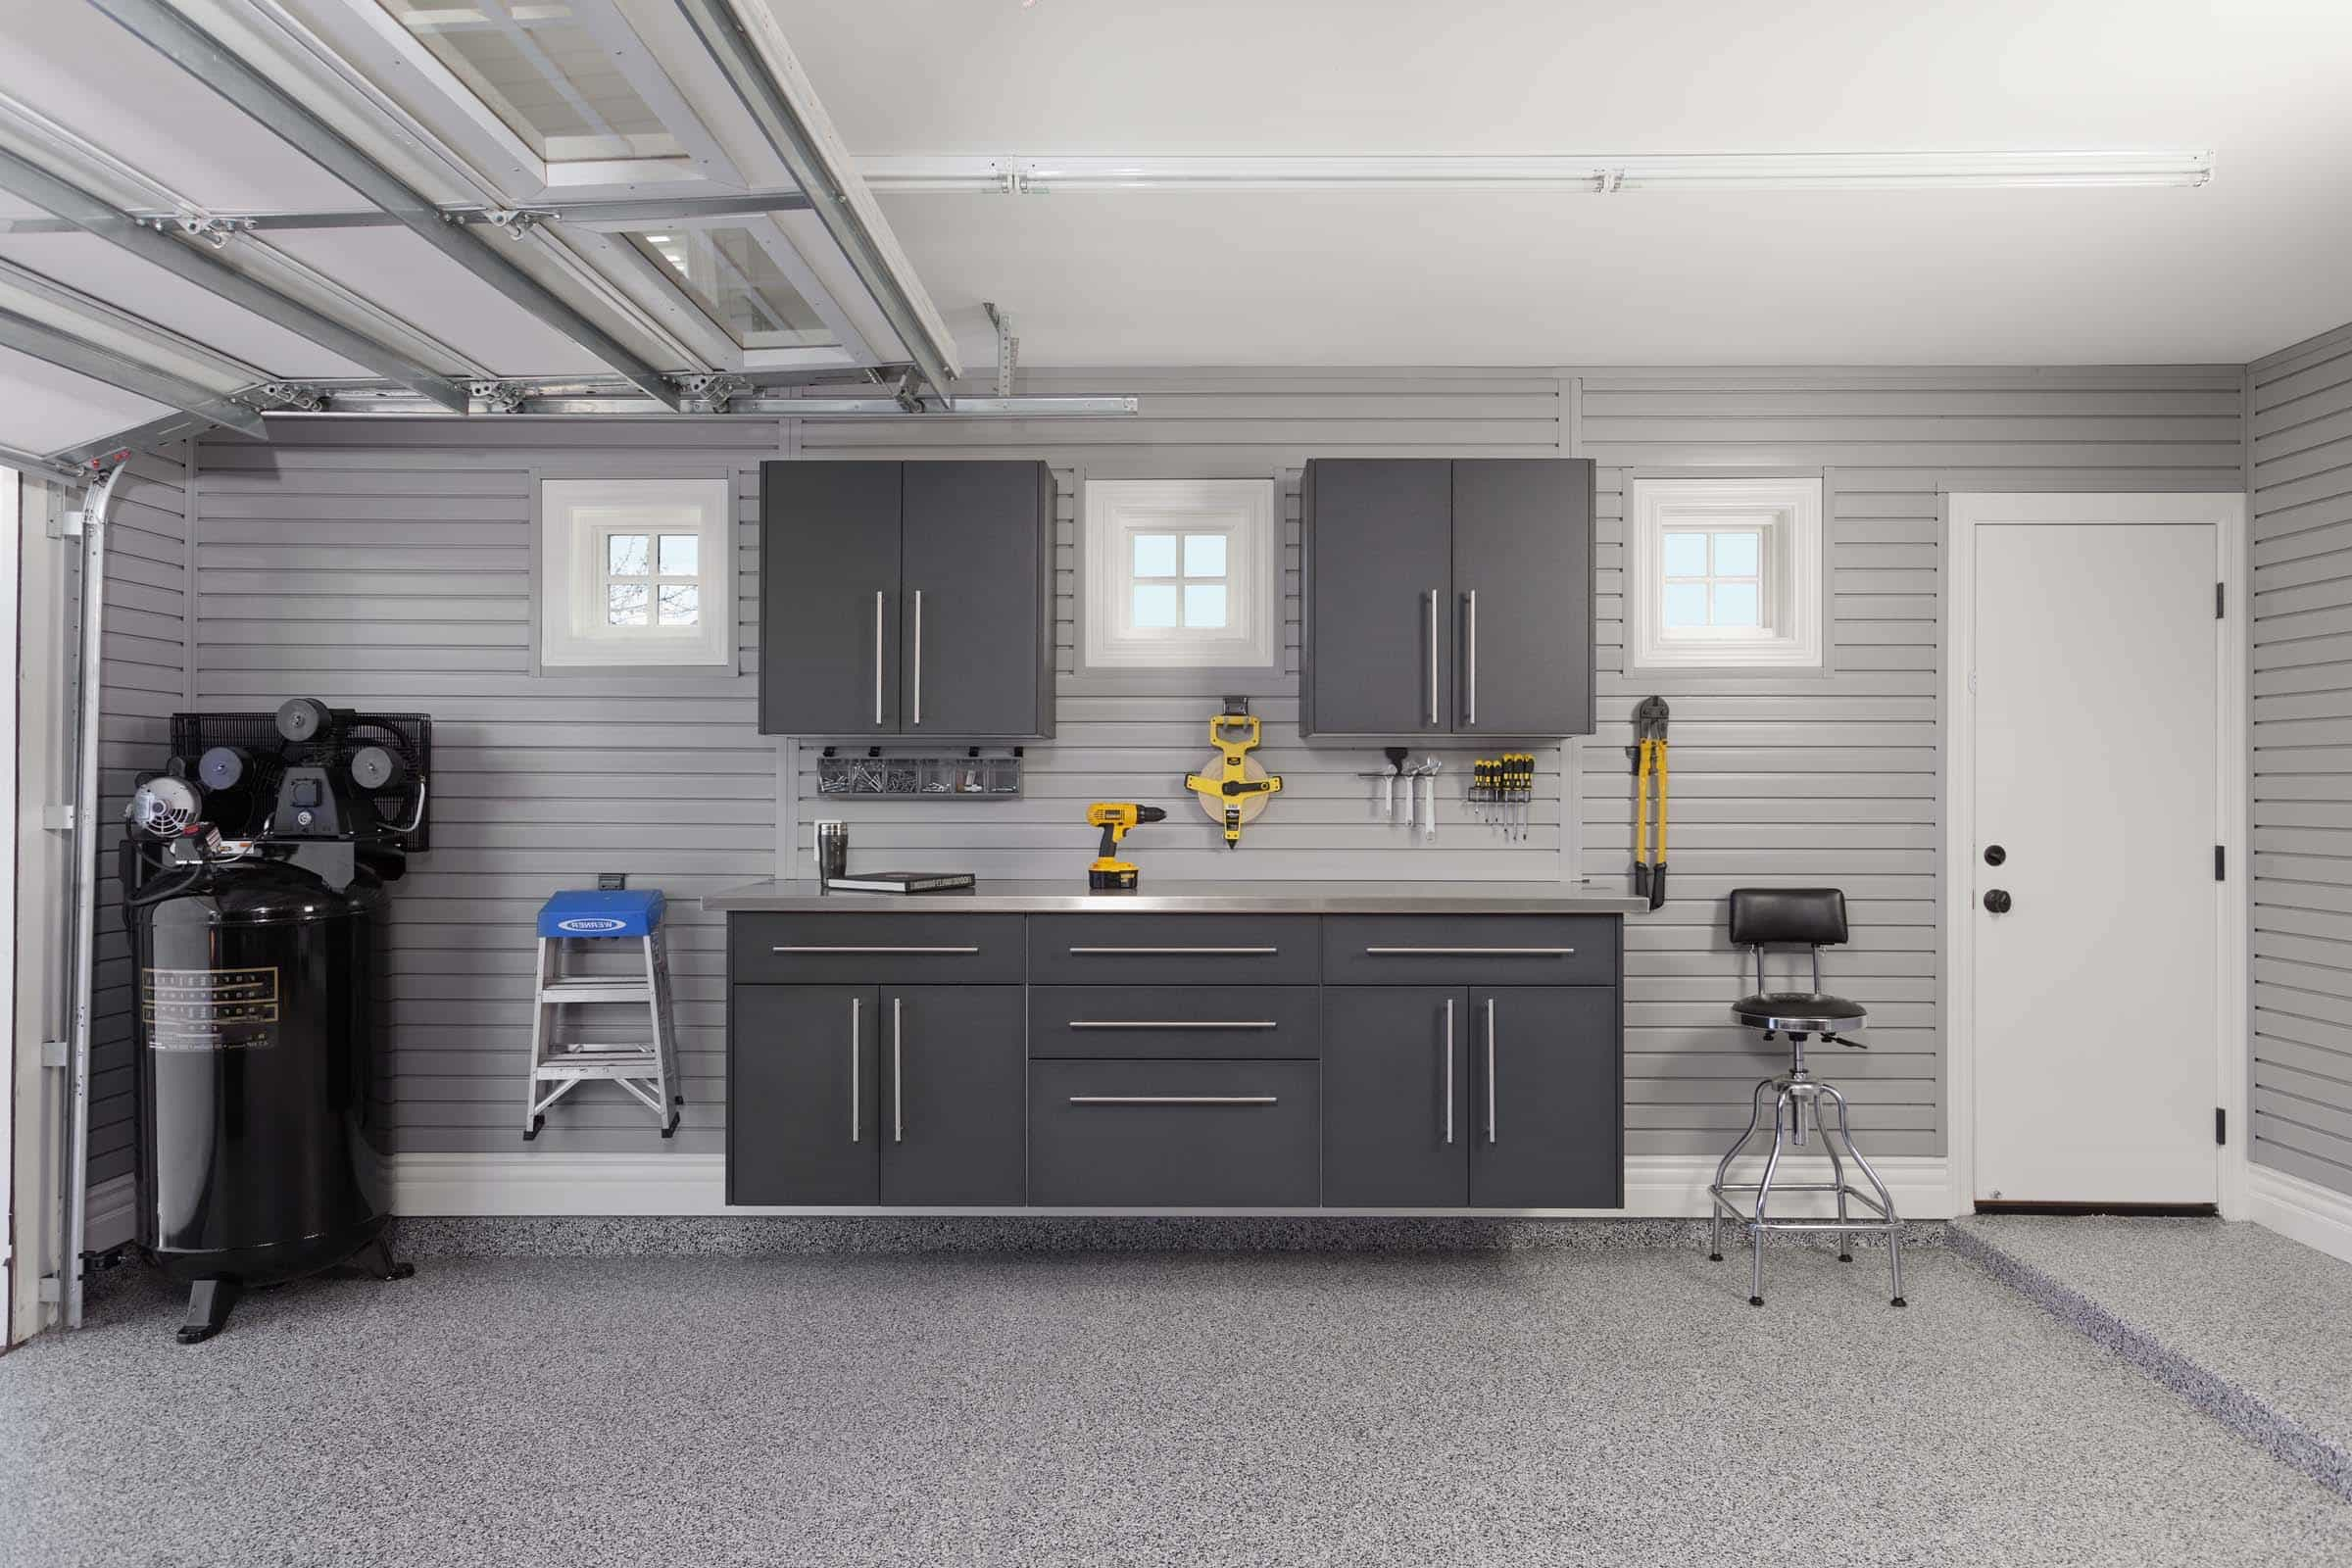 Contemporary Garage Interior With Modern Cabinet Storages And Shelves (Image 2 of 10)